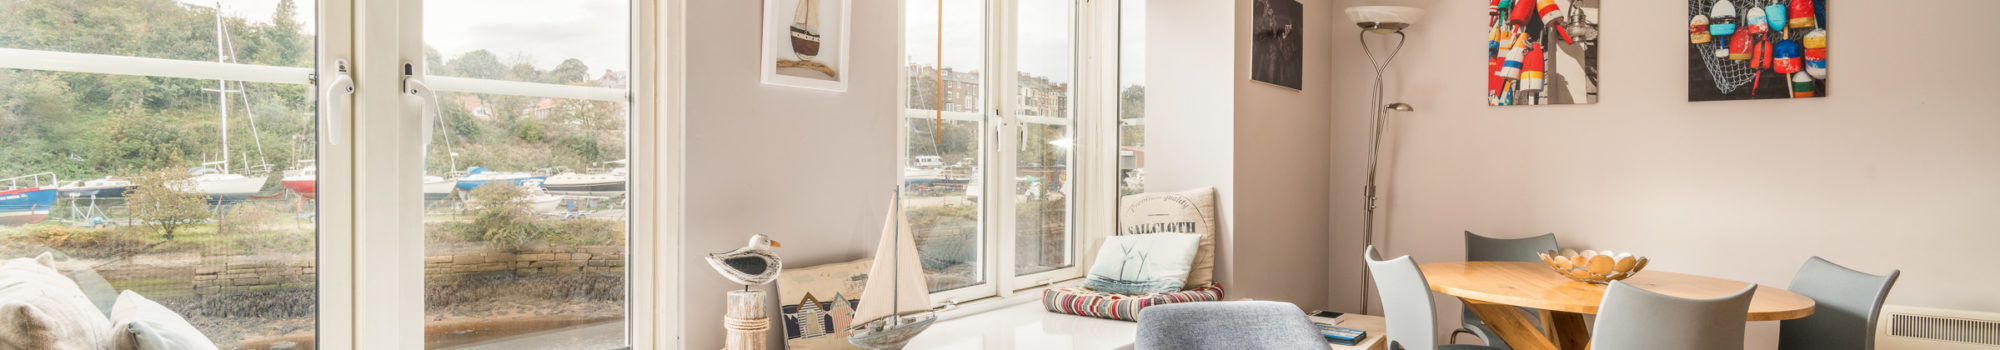 Water's Edge Apartment, Whitby. Living room with a view